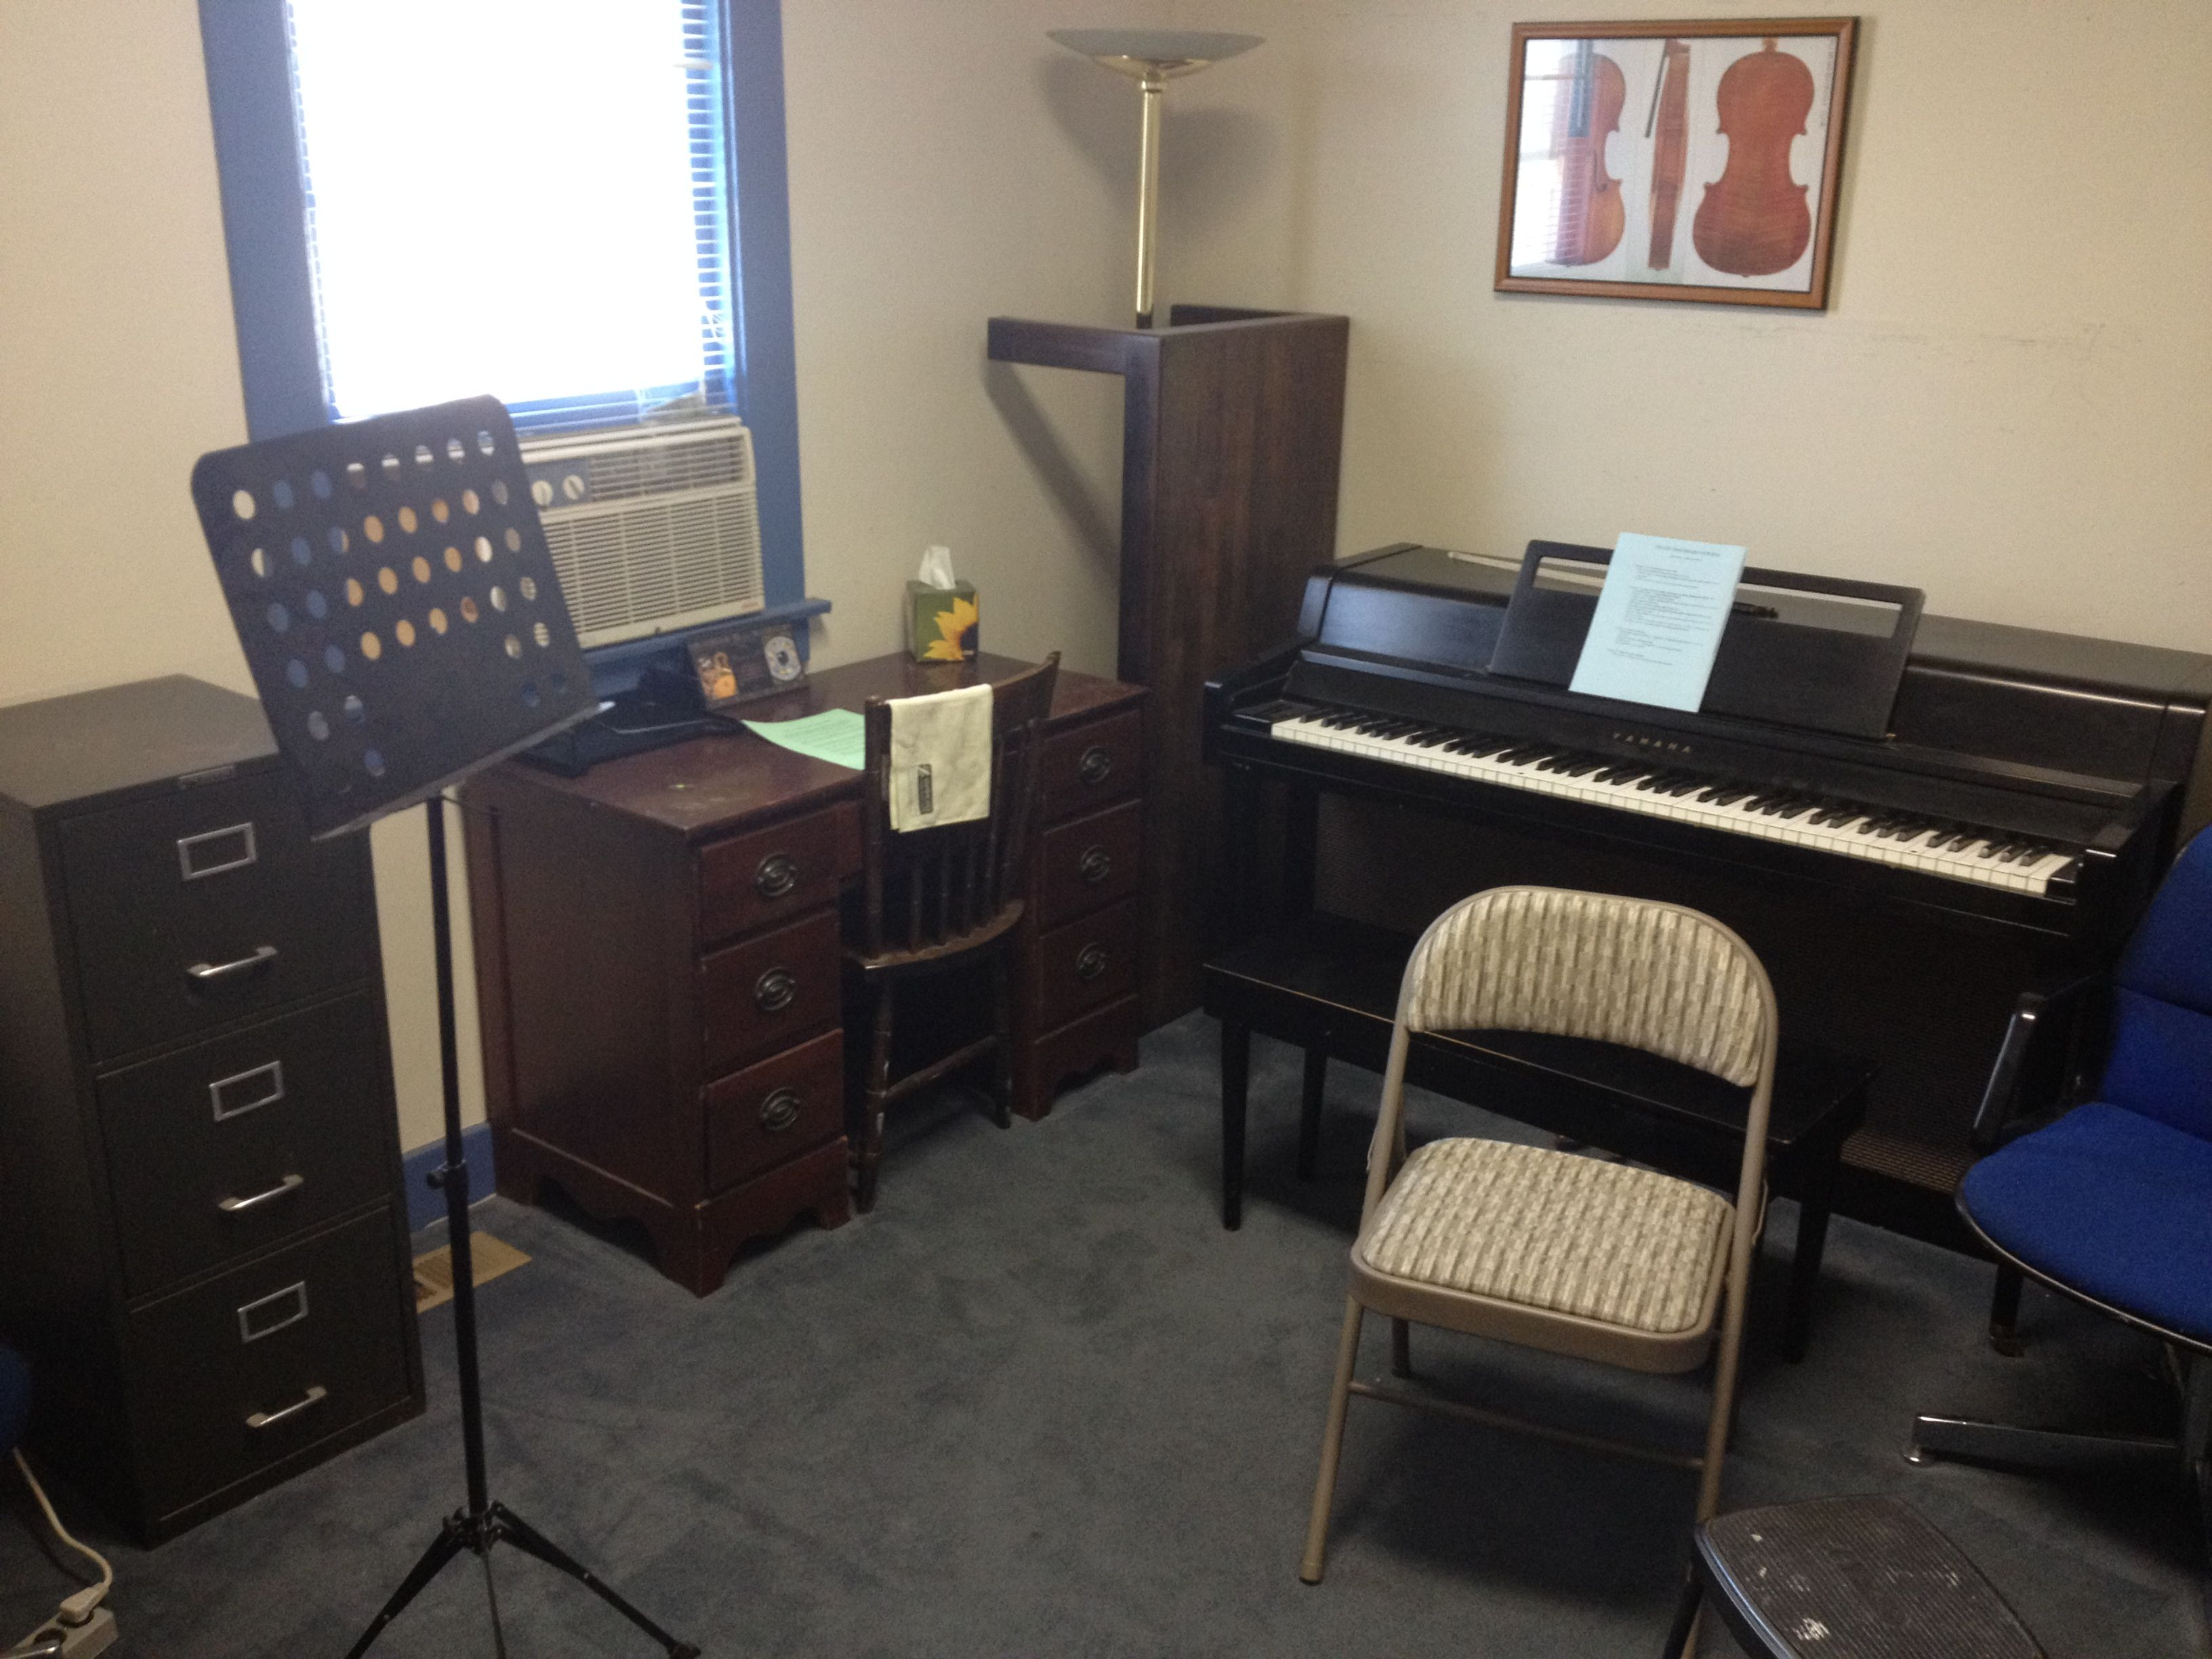 Our largest room available for teaching with carpeted floor and an upright piano.